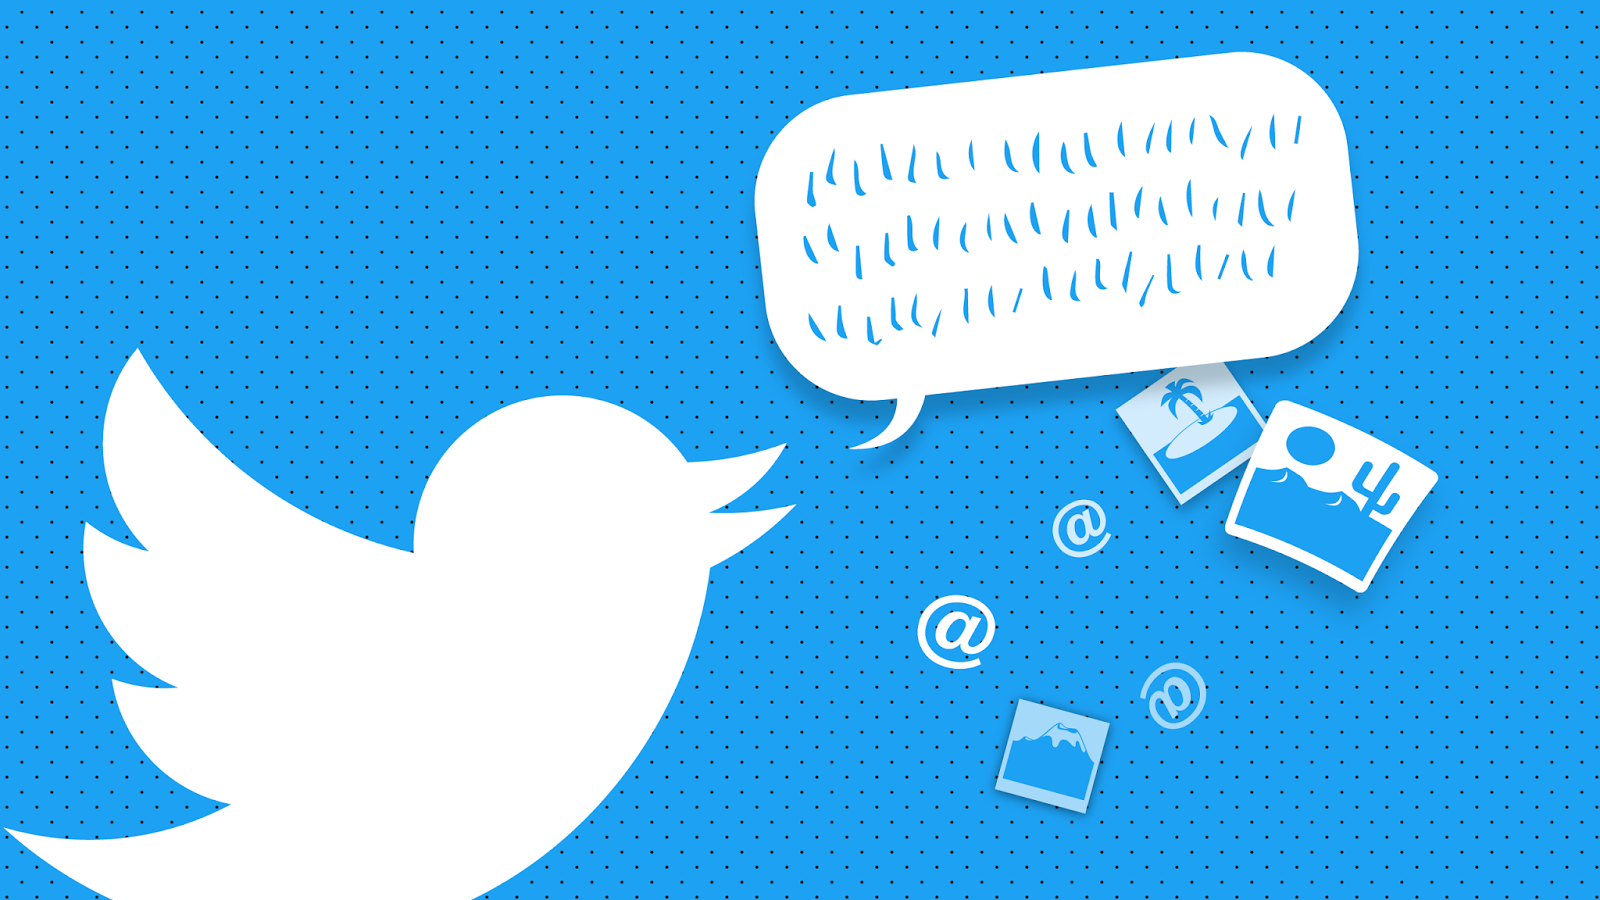 4 Secret Twitter Tips, Tricks and Hacks you may not (or may) know about